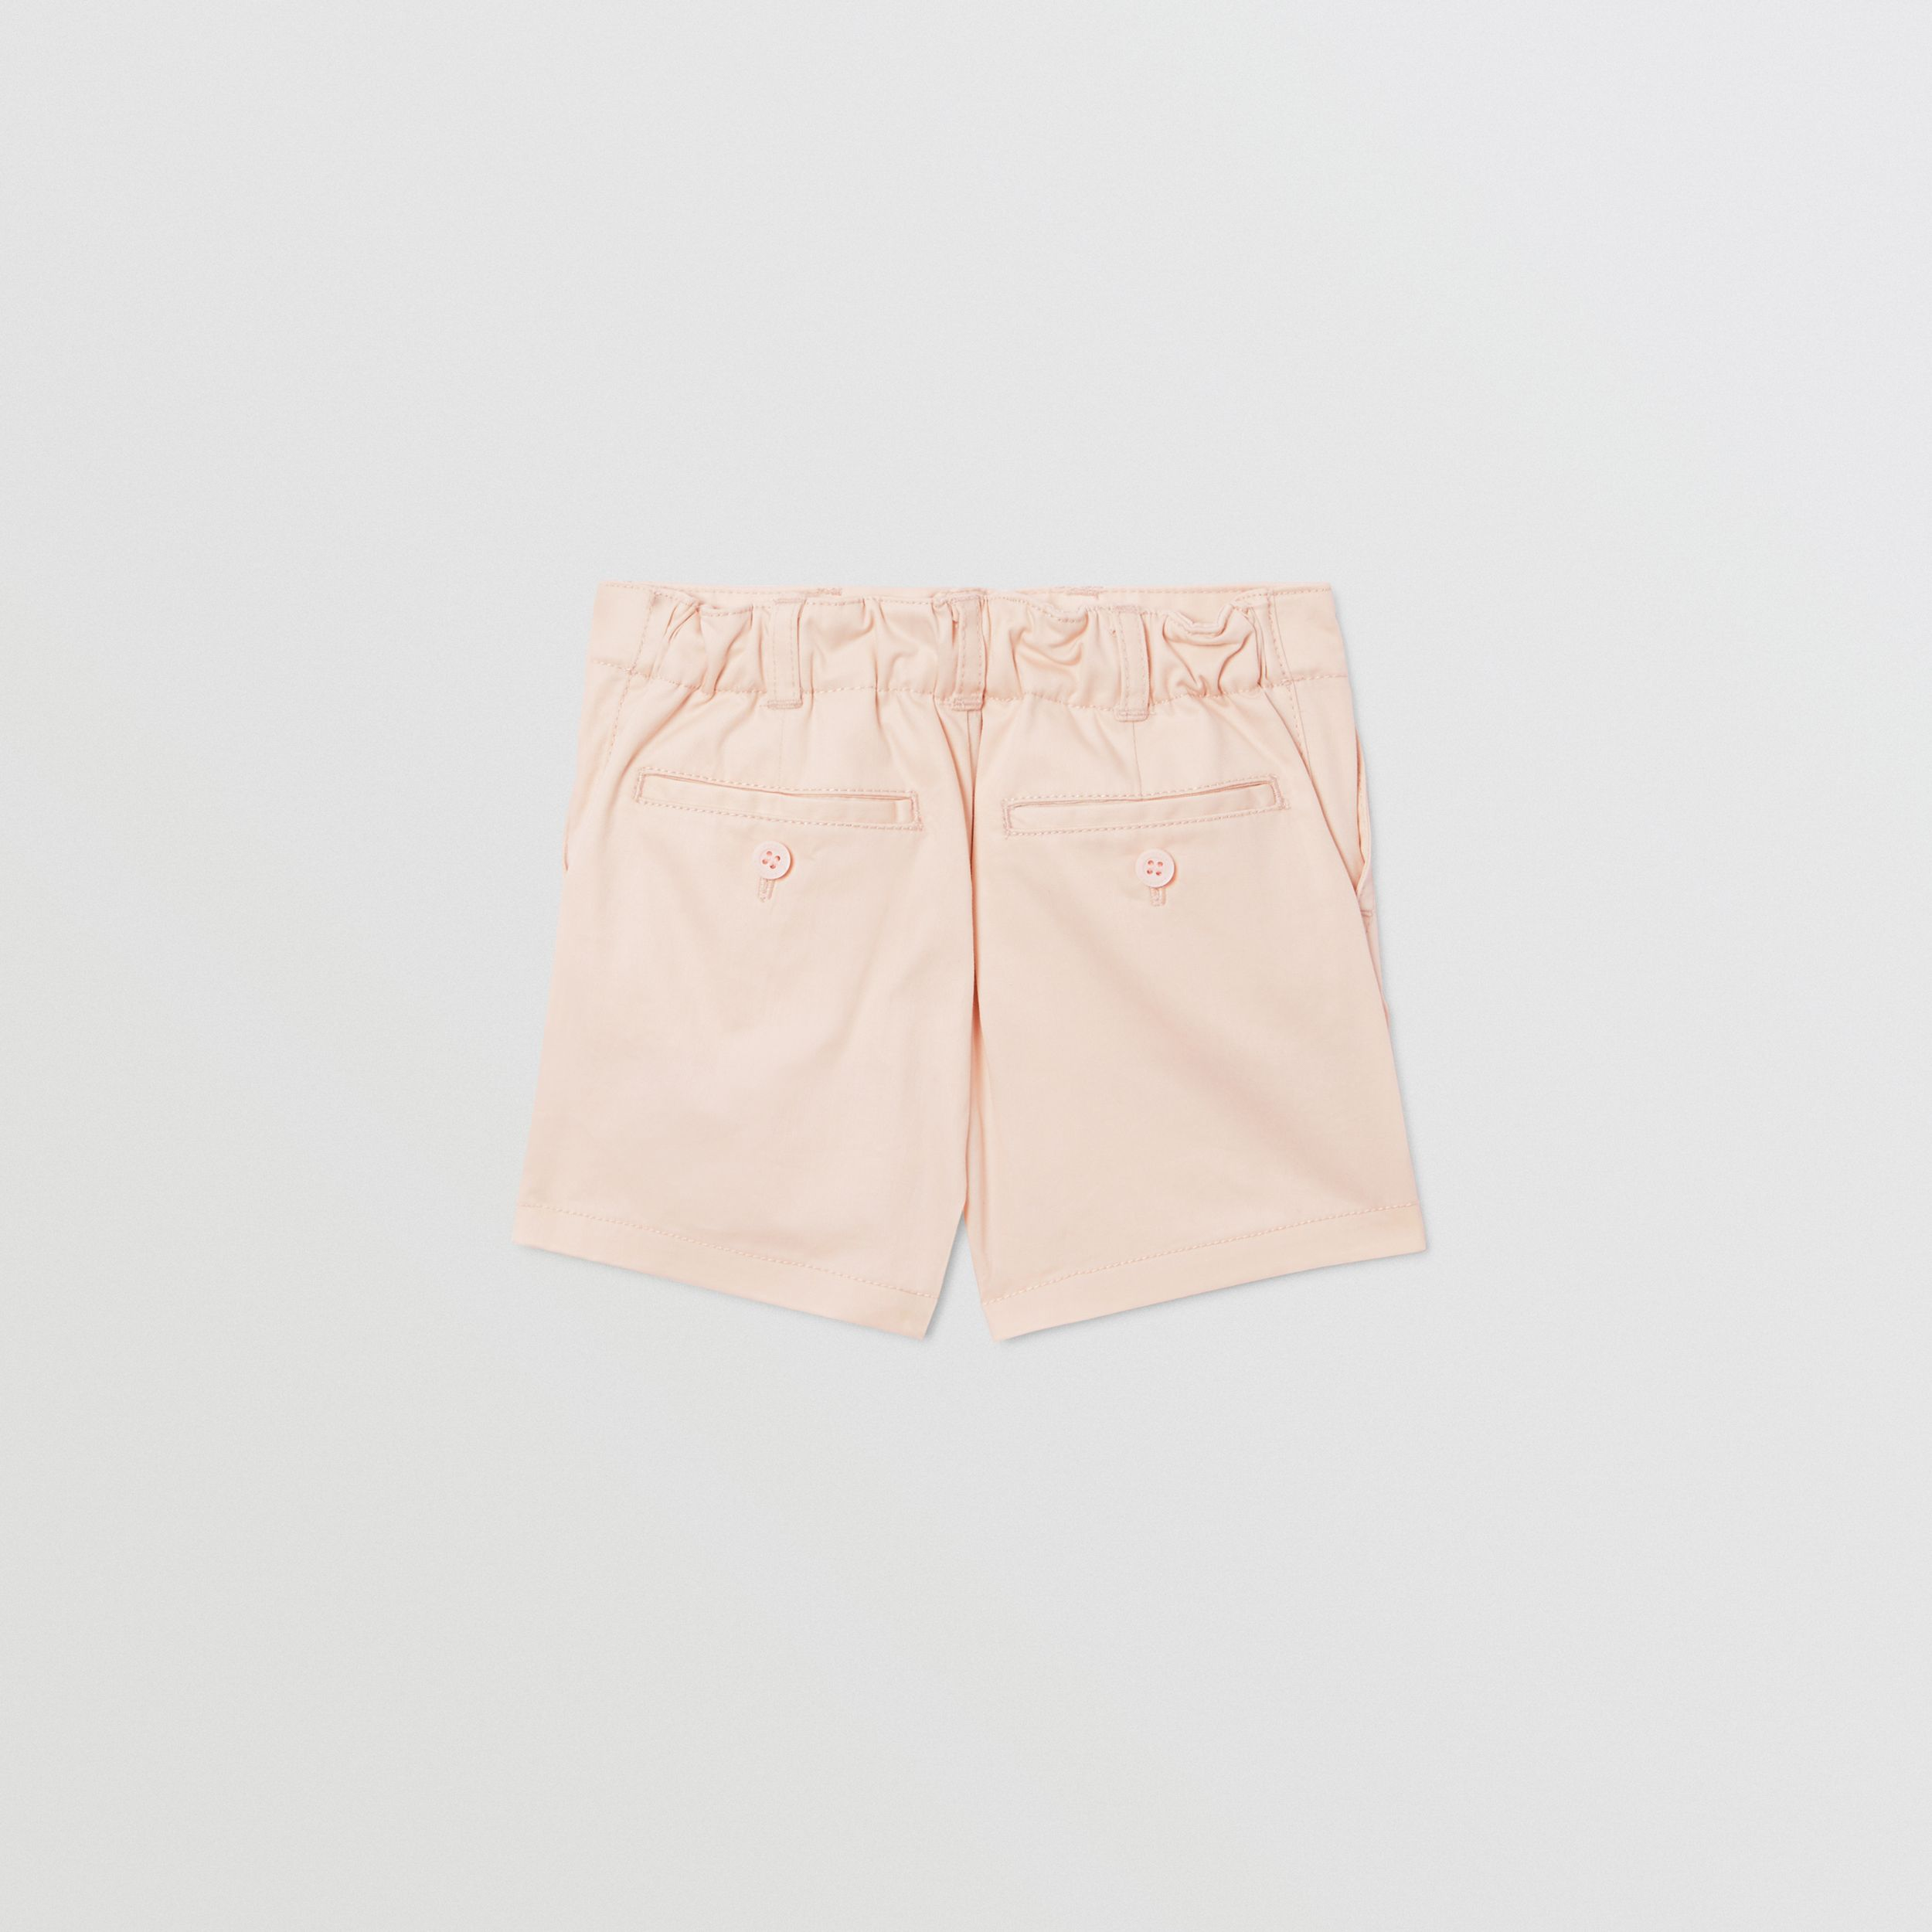 Embroidered Logo Cotton Shorts in Soft Pink - Children | Burberry - 4